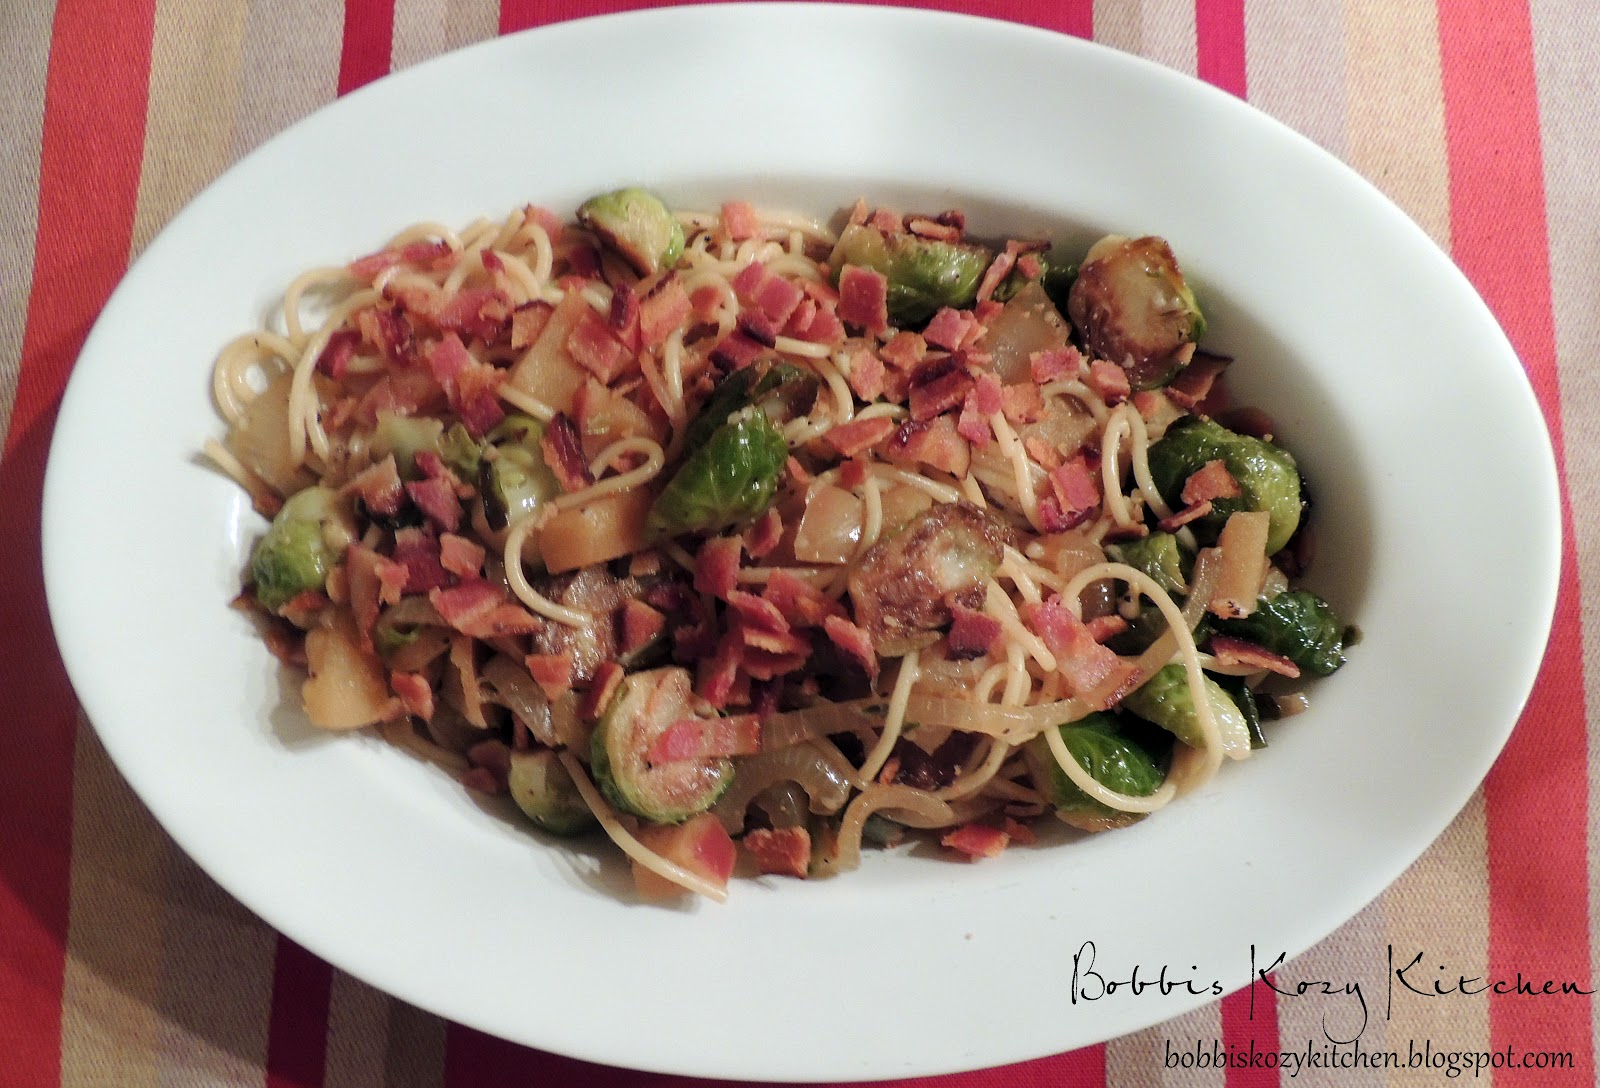 ... Kitchen: Pasta with Caramelized Onions, Brussels Sprouts, and Apples